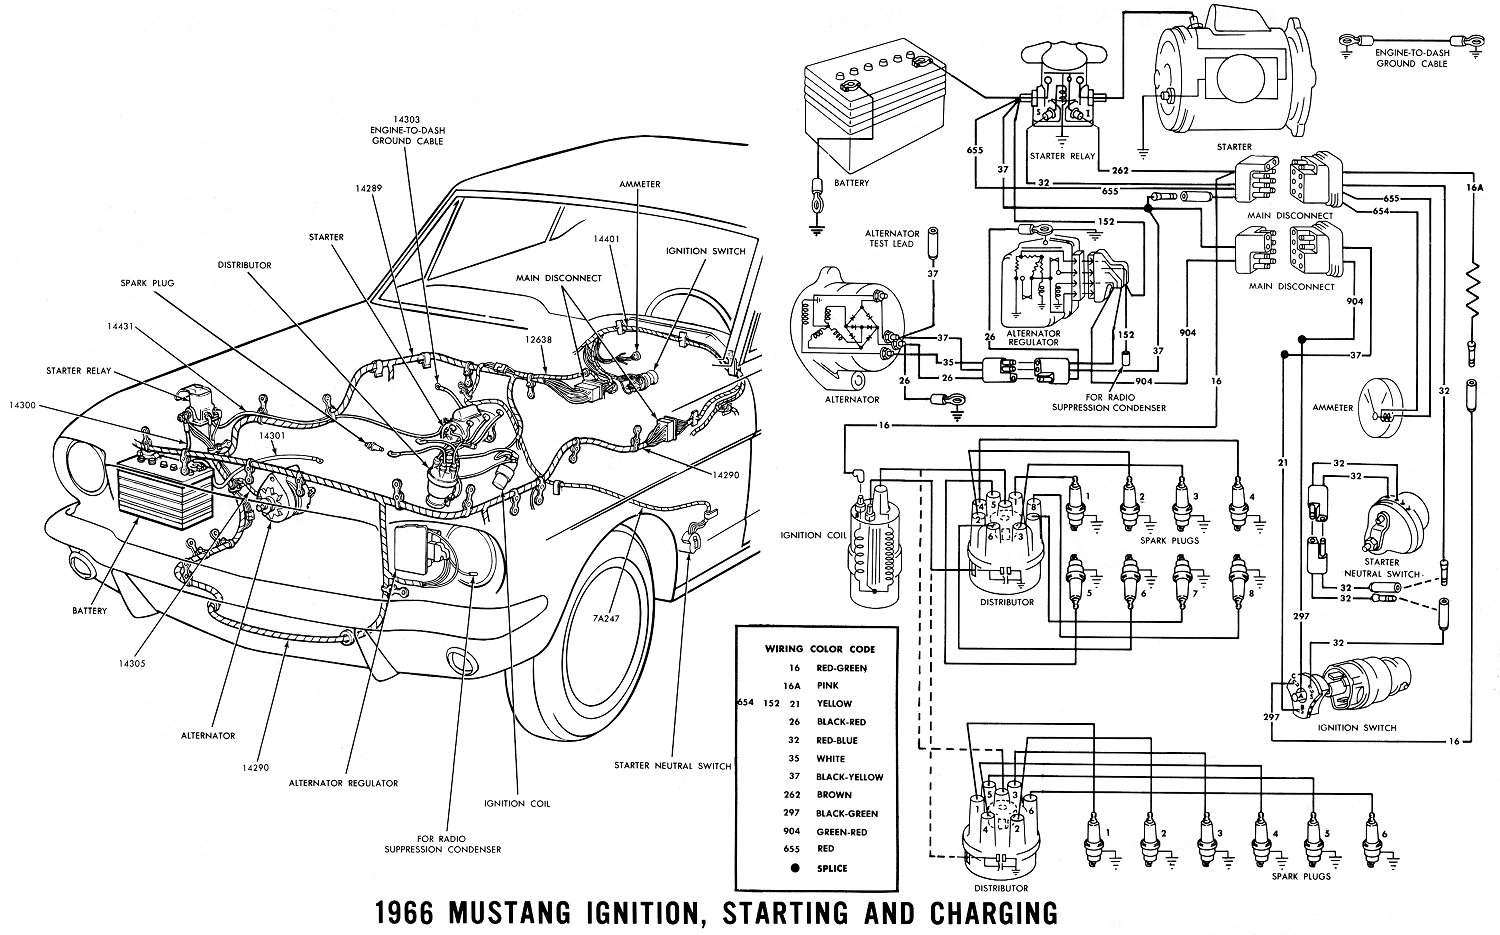 66ignit 1966 mustang wiring diagrams average joe restoration 1997 ford mustang wiring diagram at gsmx.co